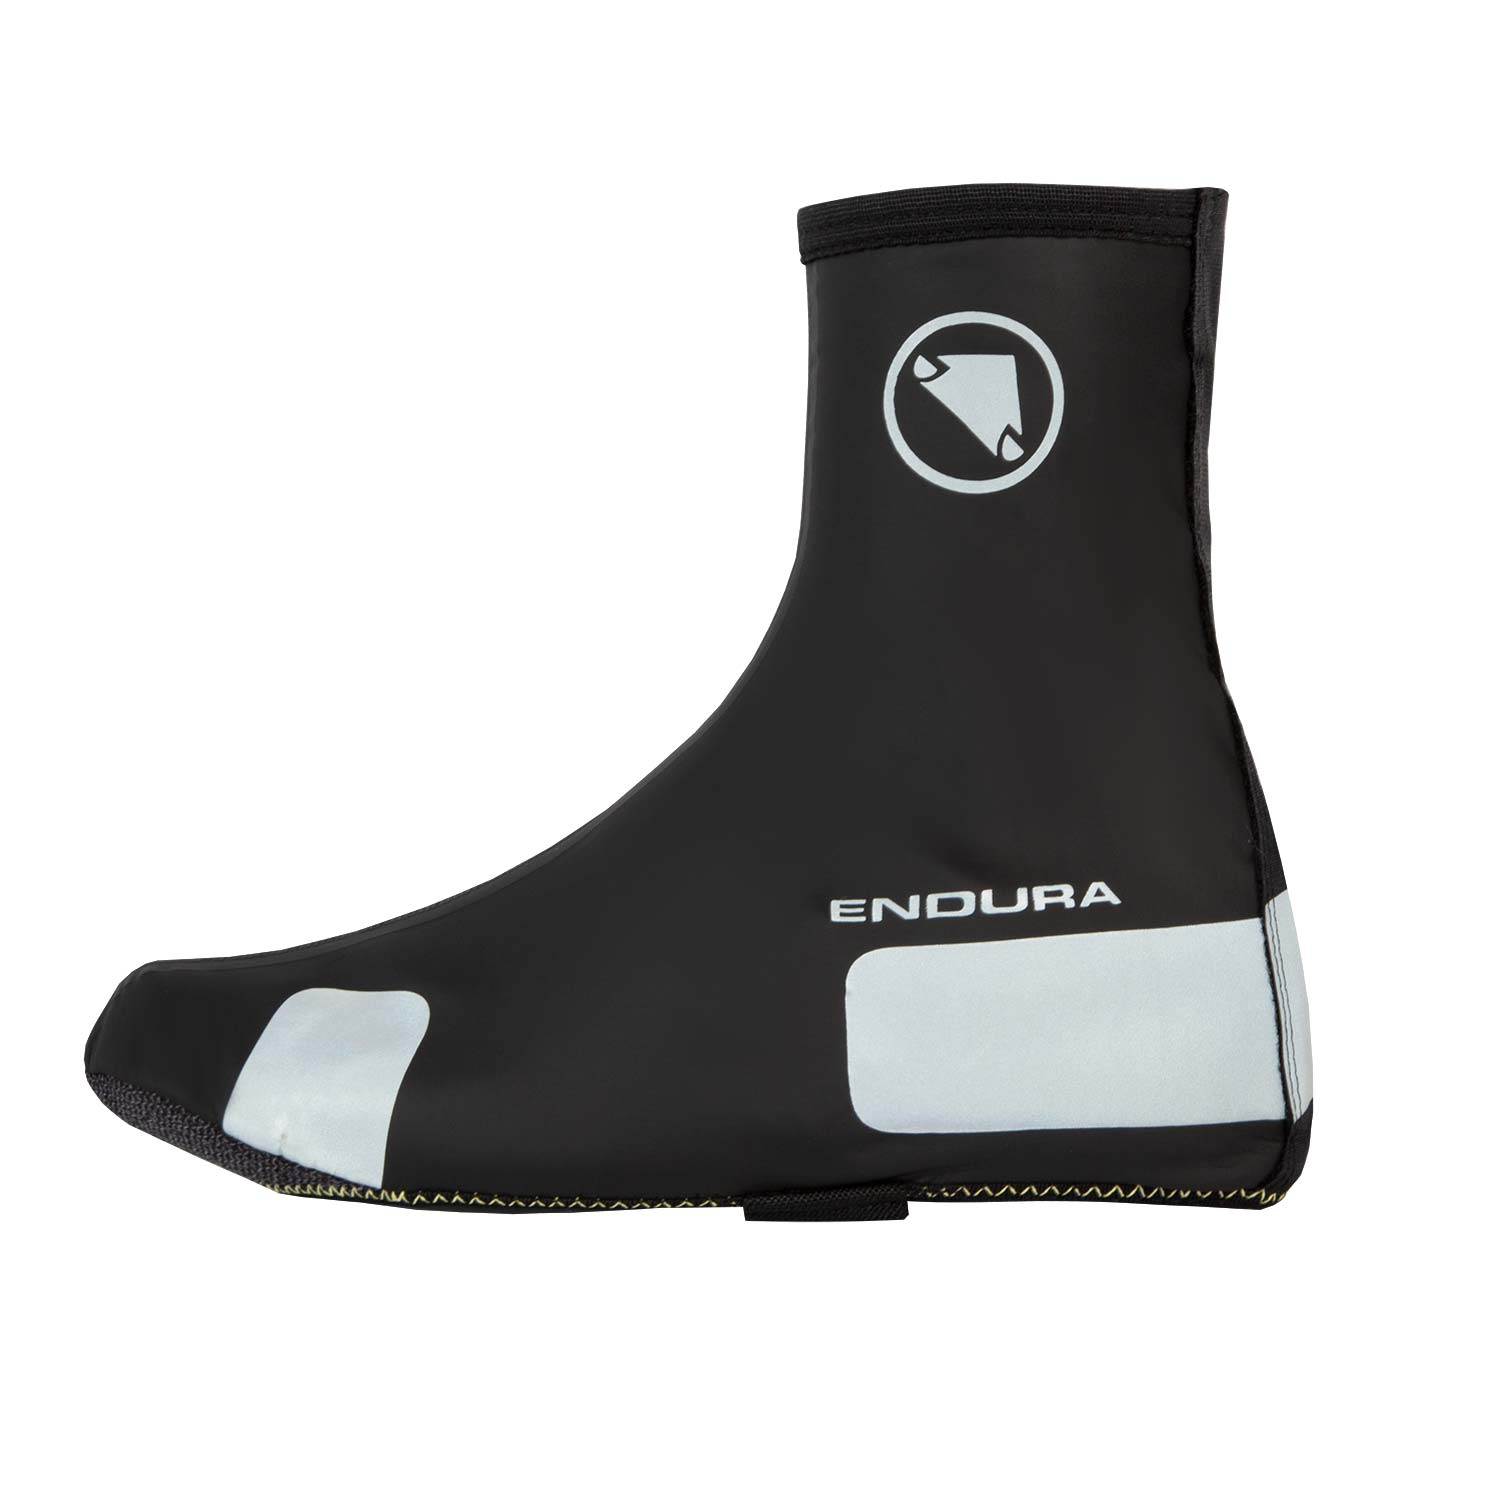 Endura Urban Luminite (Extra Extra Large) Waterproof Commuter Cycling Overshoes